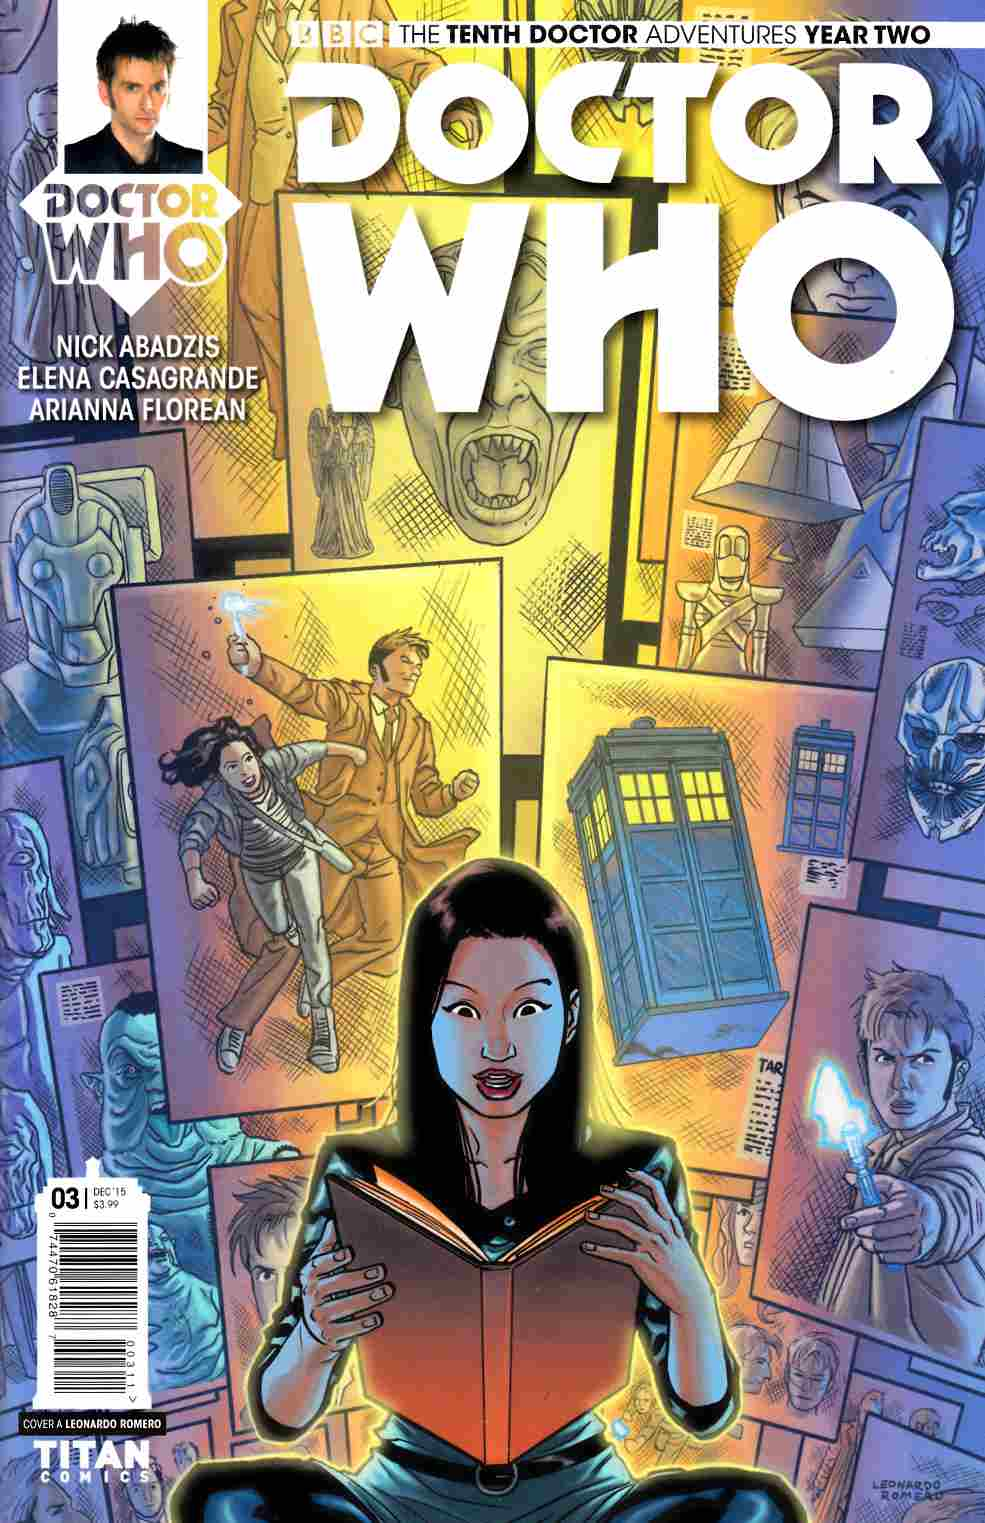 Doctor Who 10th Doctor Year 2 #3 [Titan Comic]_THUMBNAIL